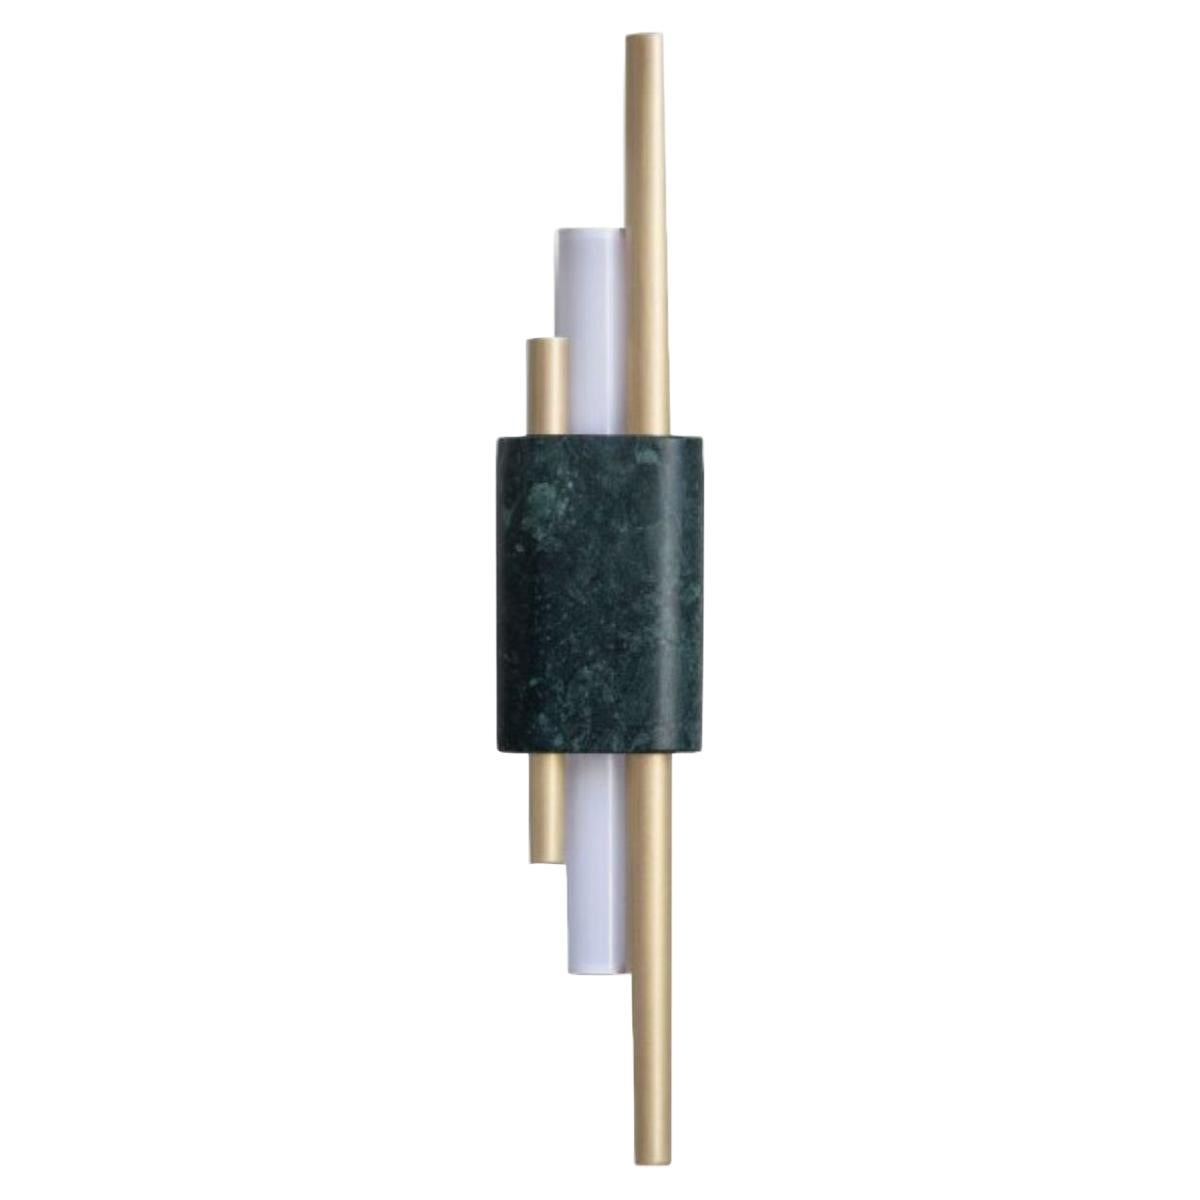 Tanto Wall Light, Large, Green by Bert Frank